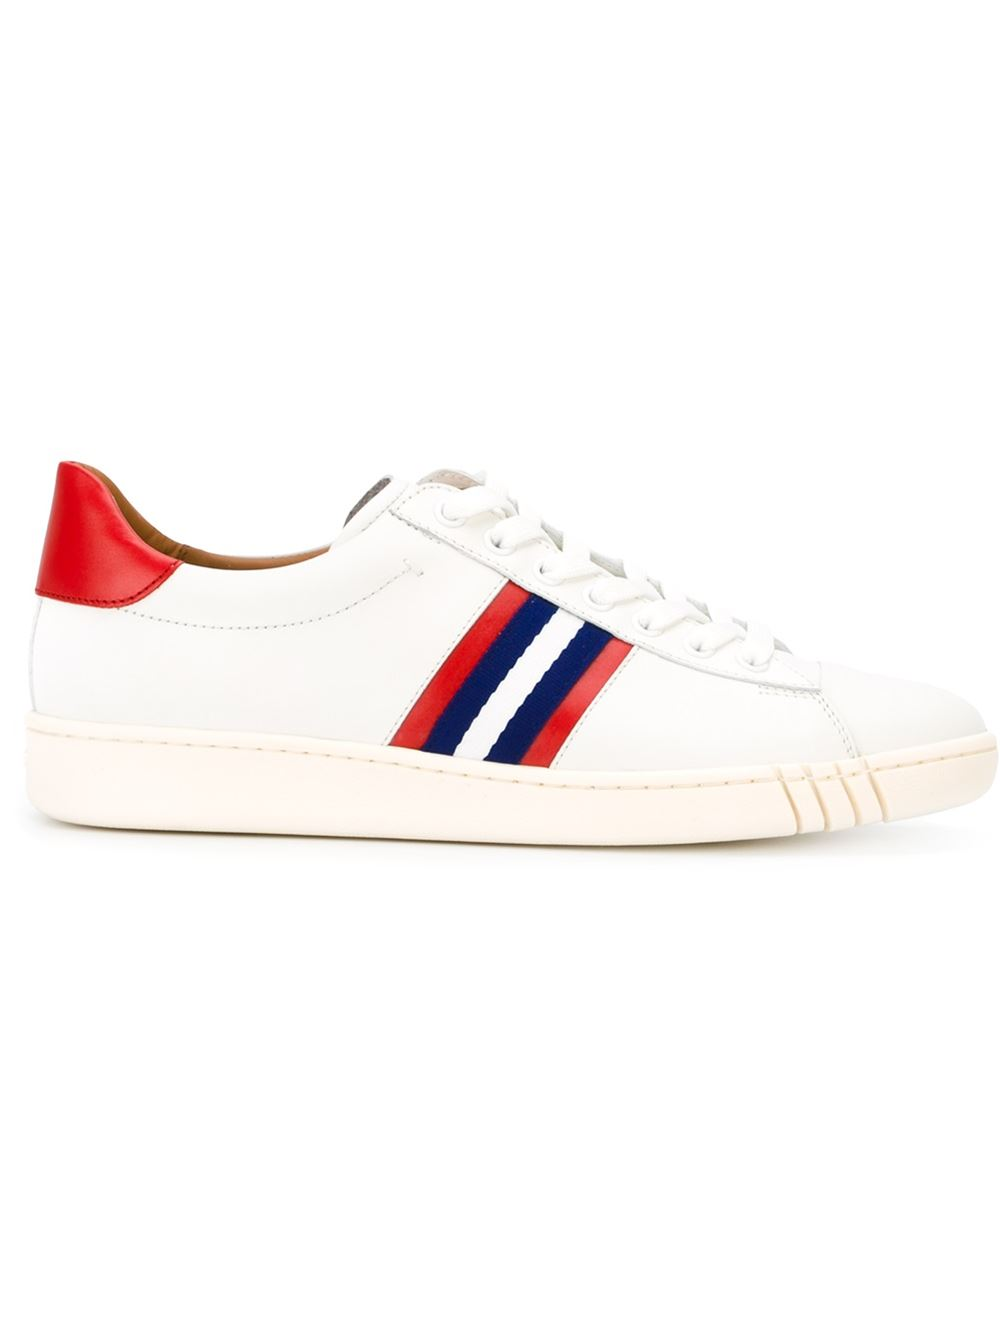 Bally Wiolet Sneakers